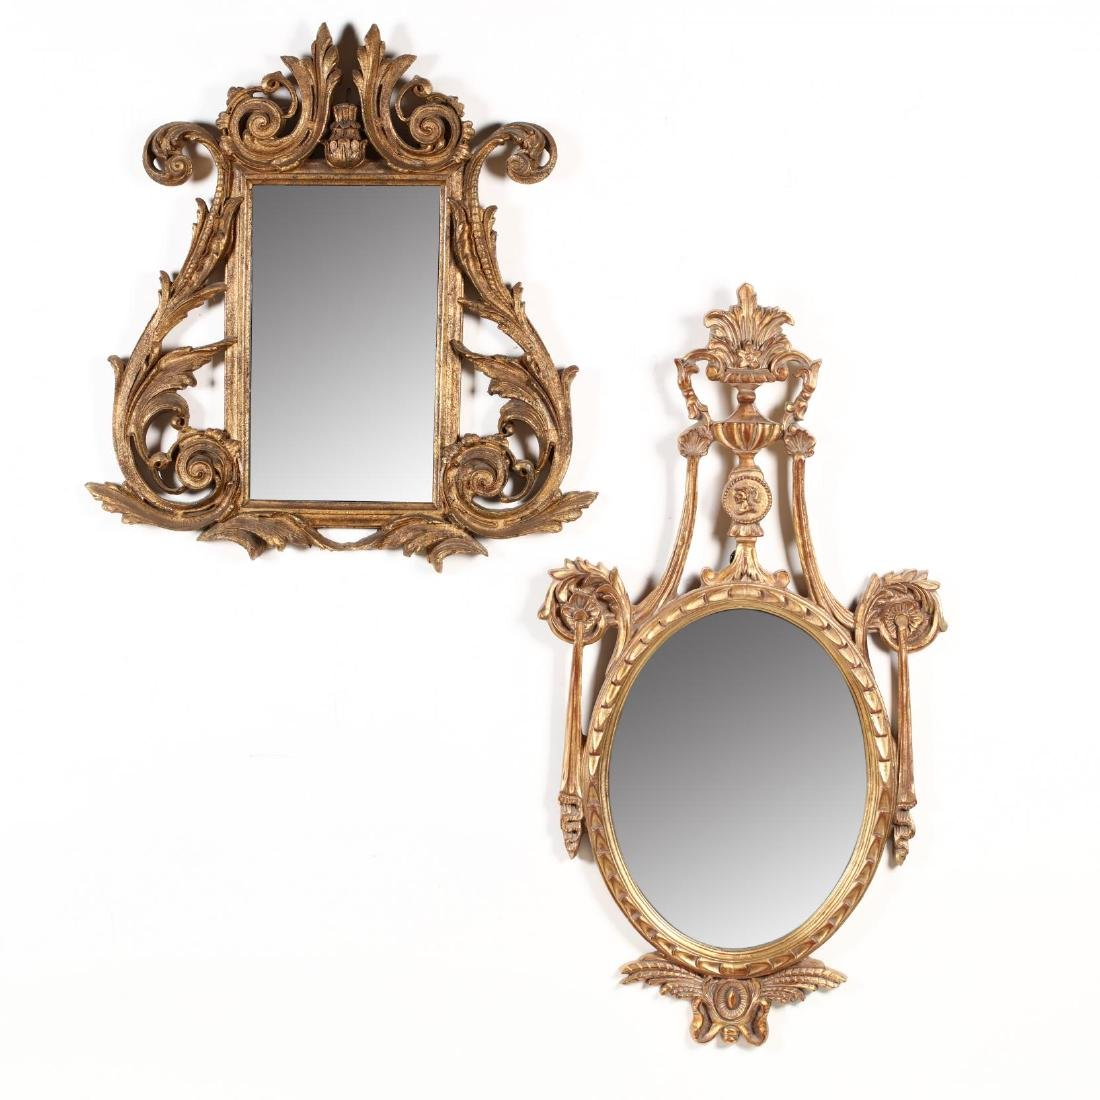 Two Decorative Continental Gilt Mirrors